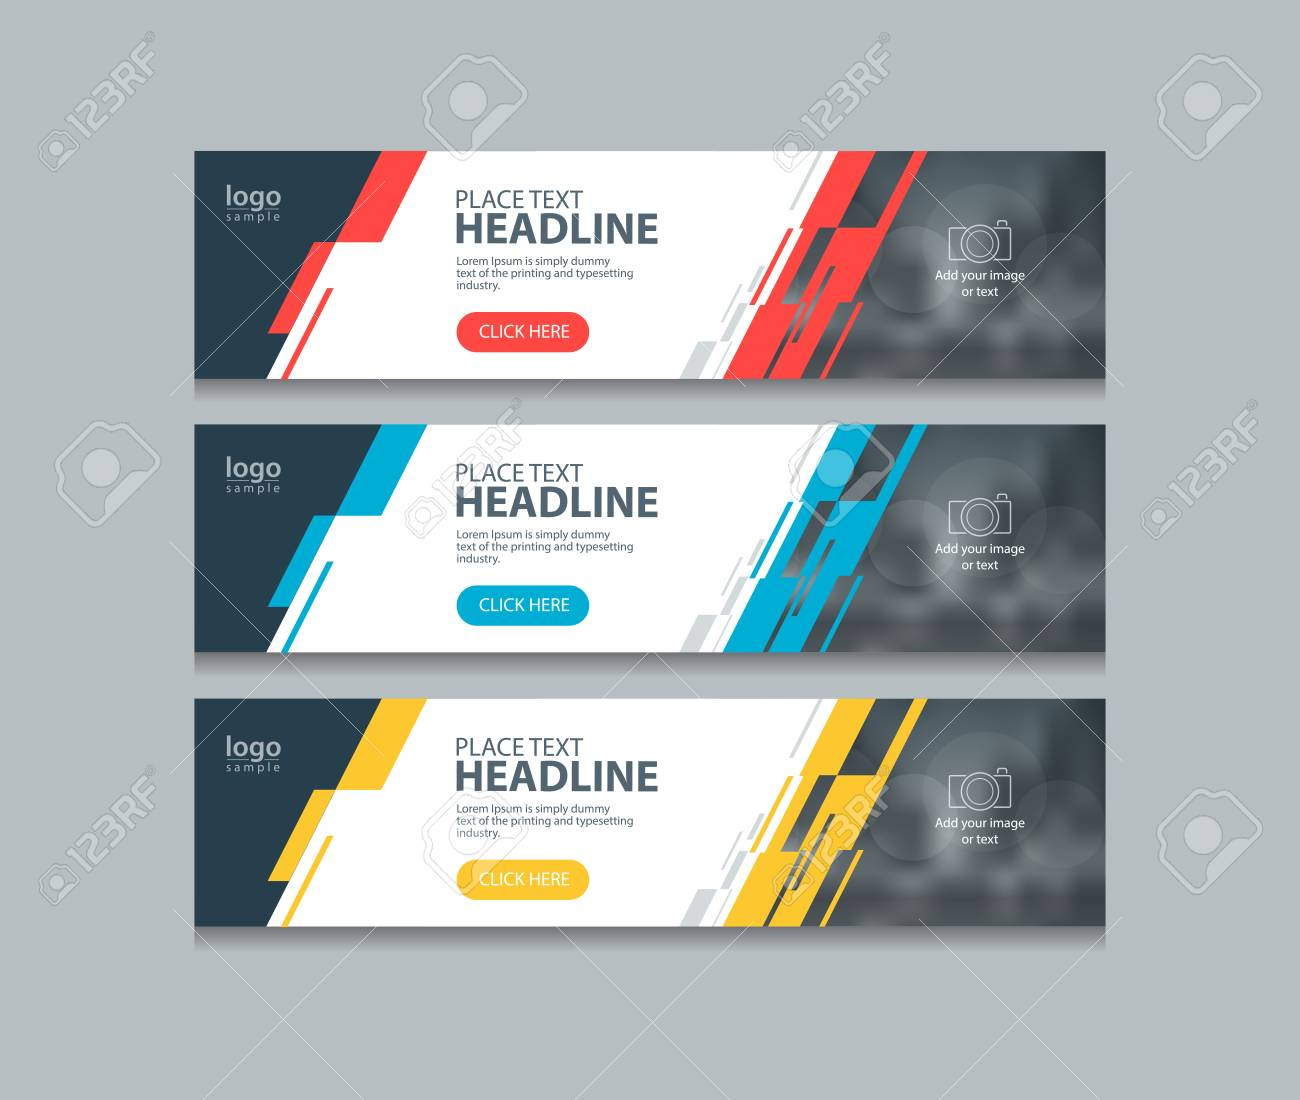 Abstract Horizontal Web Banner Design Template Backgrounds Royalty Free Cliparts Vectors And Stock Illustration Image 106955269